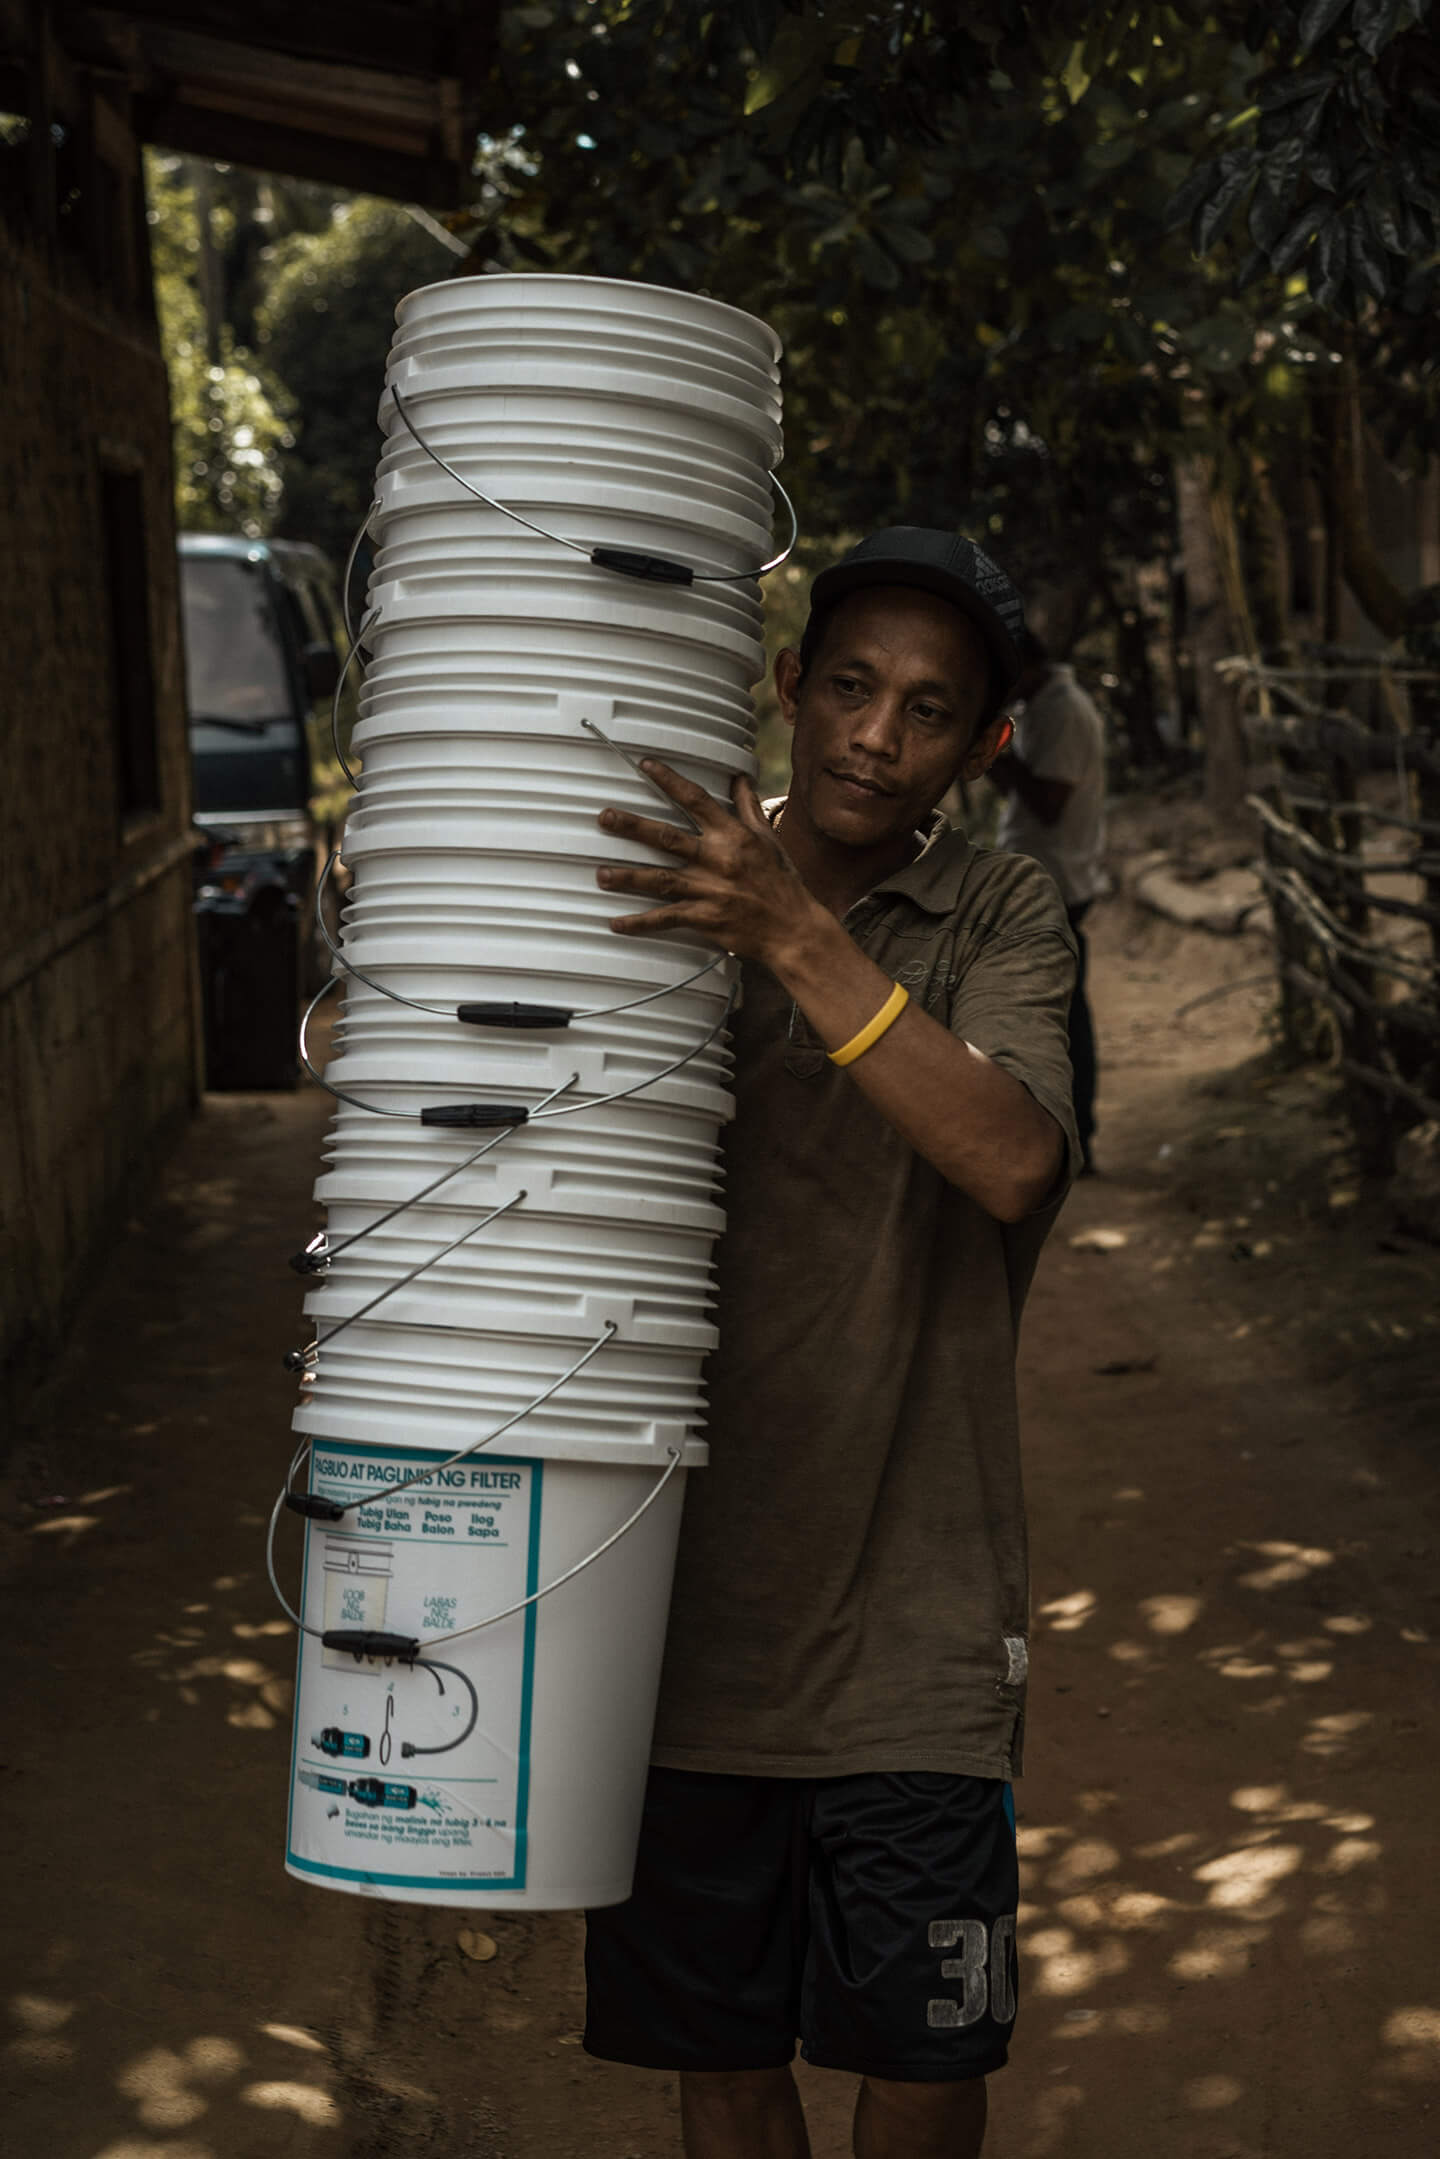 A Palawan local carrying white pails for getting filtered water.